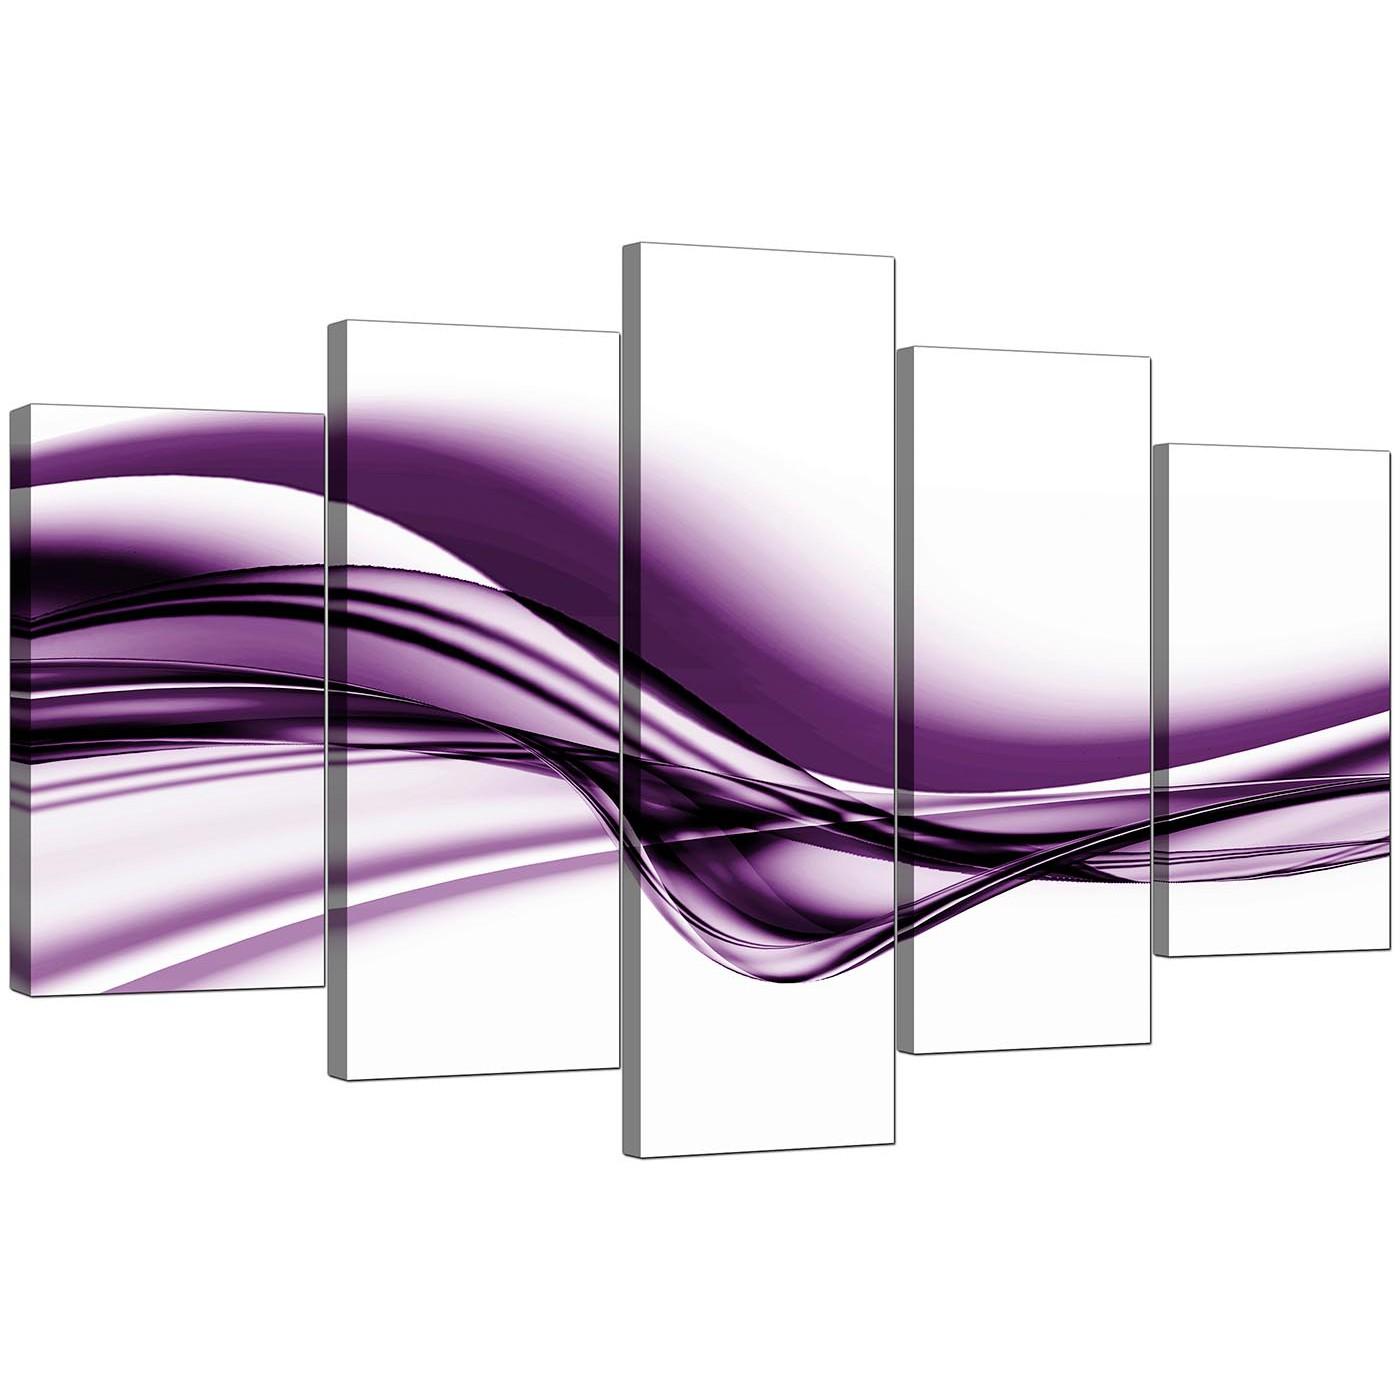 Charmant Display Gallery Item 4; 5 Part Set Of Extra Large Purple Canvas Wall Art  Display Gallery Item 5